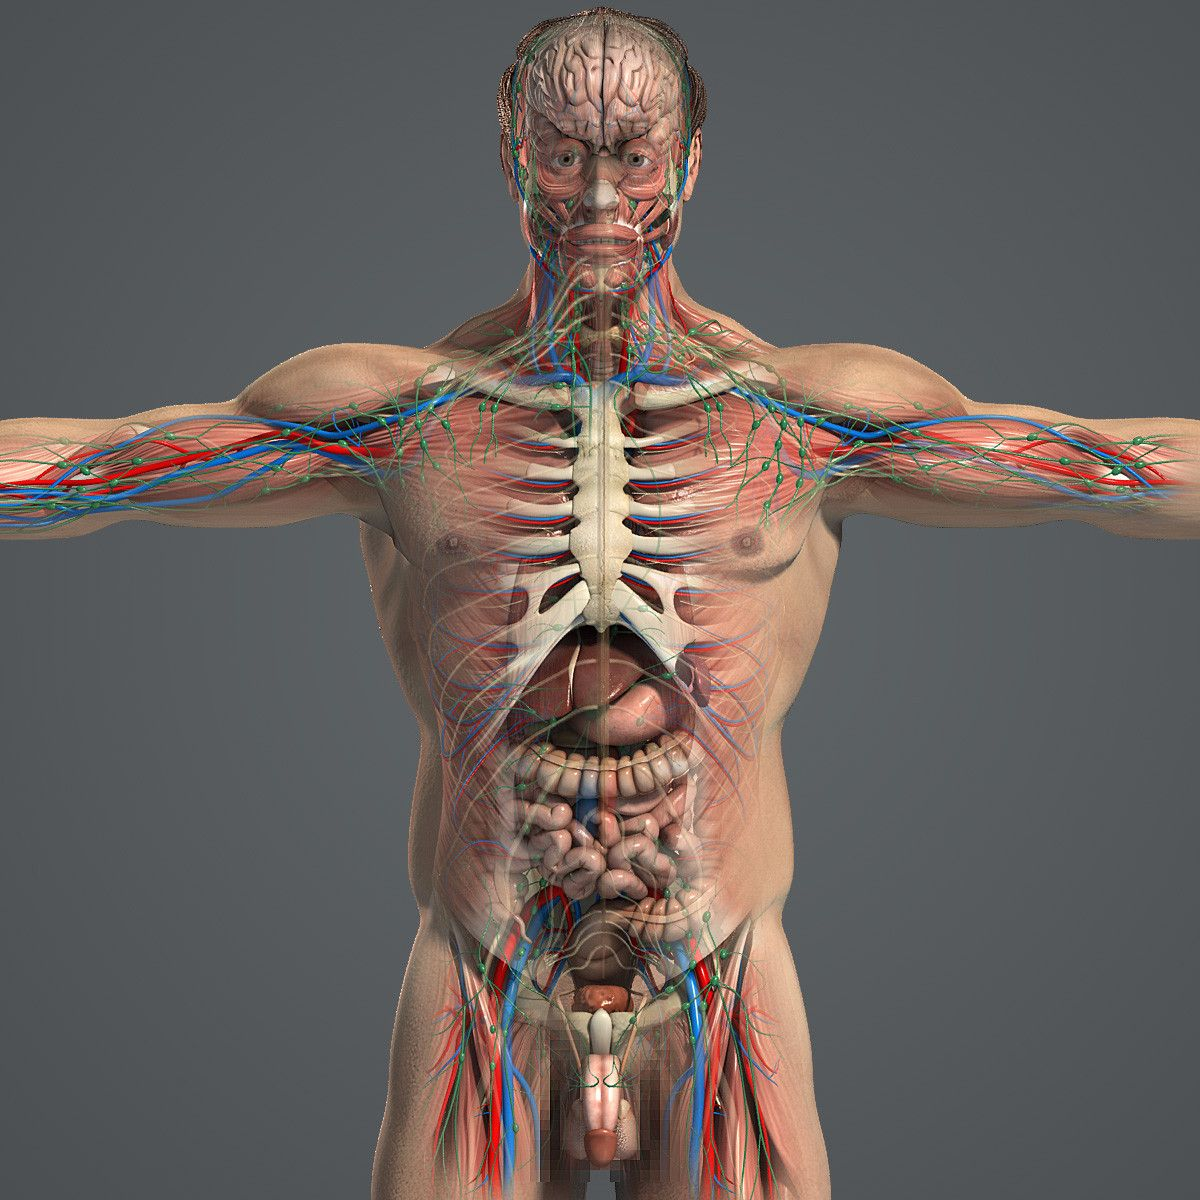 Complete Male Anatomy 3d Model Premium 3d Models Pinterest Anatomy